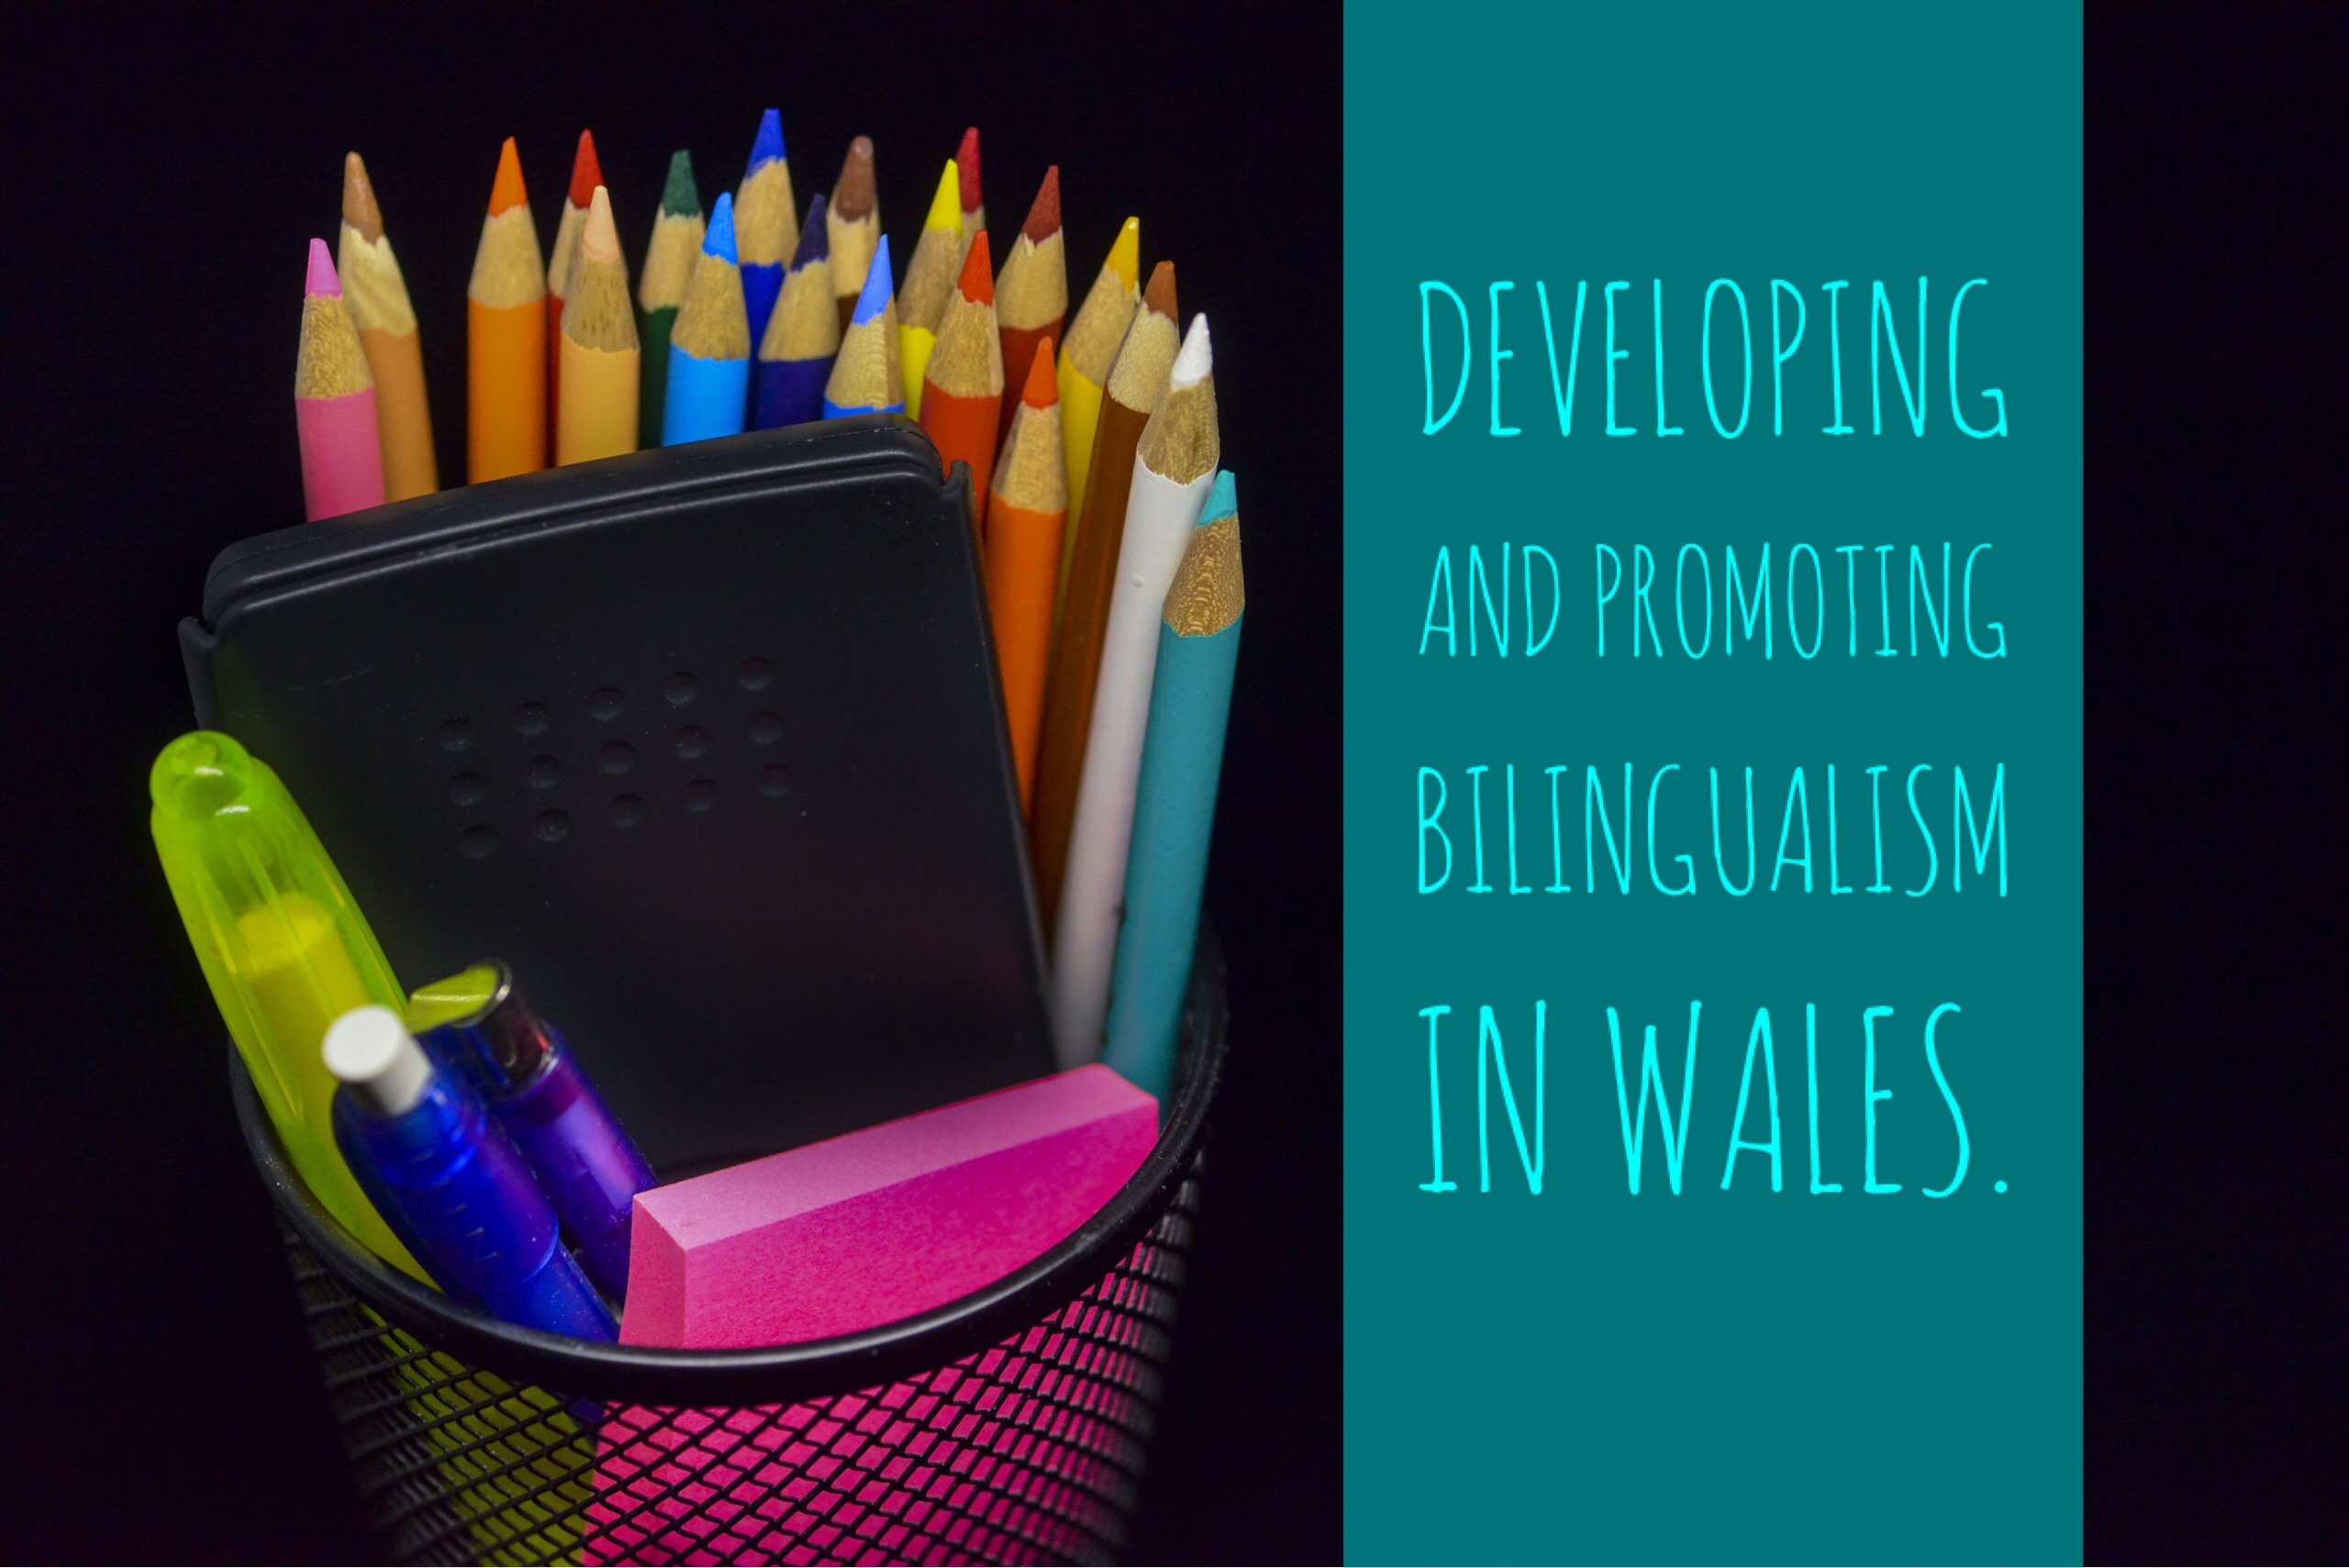 Developing and promoting bilingualism in Wales.